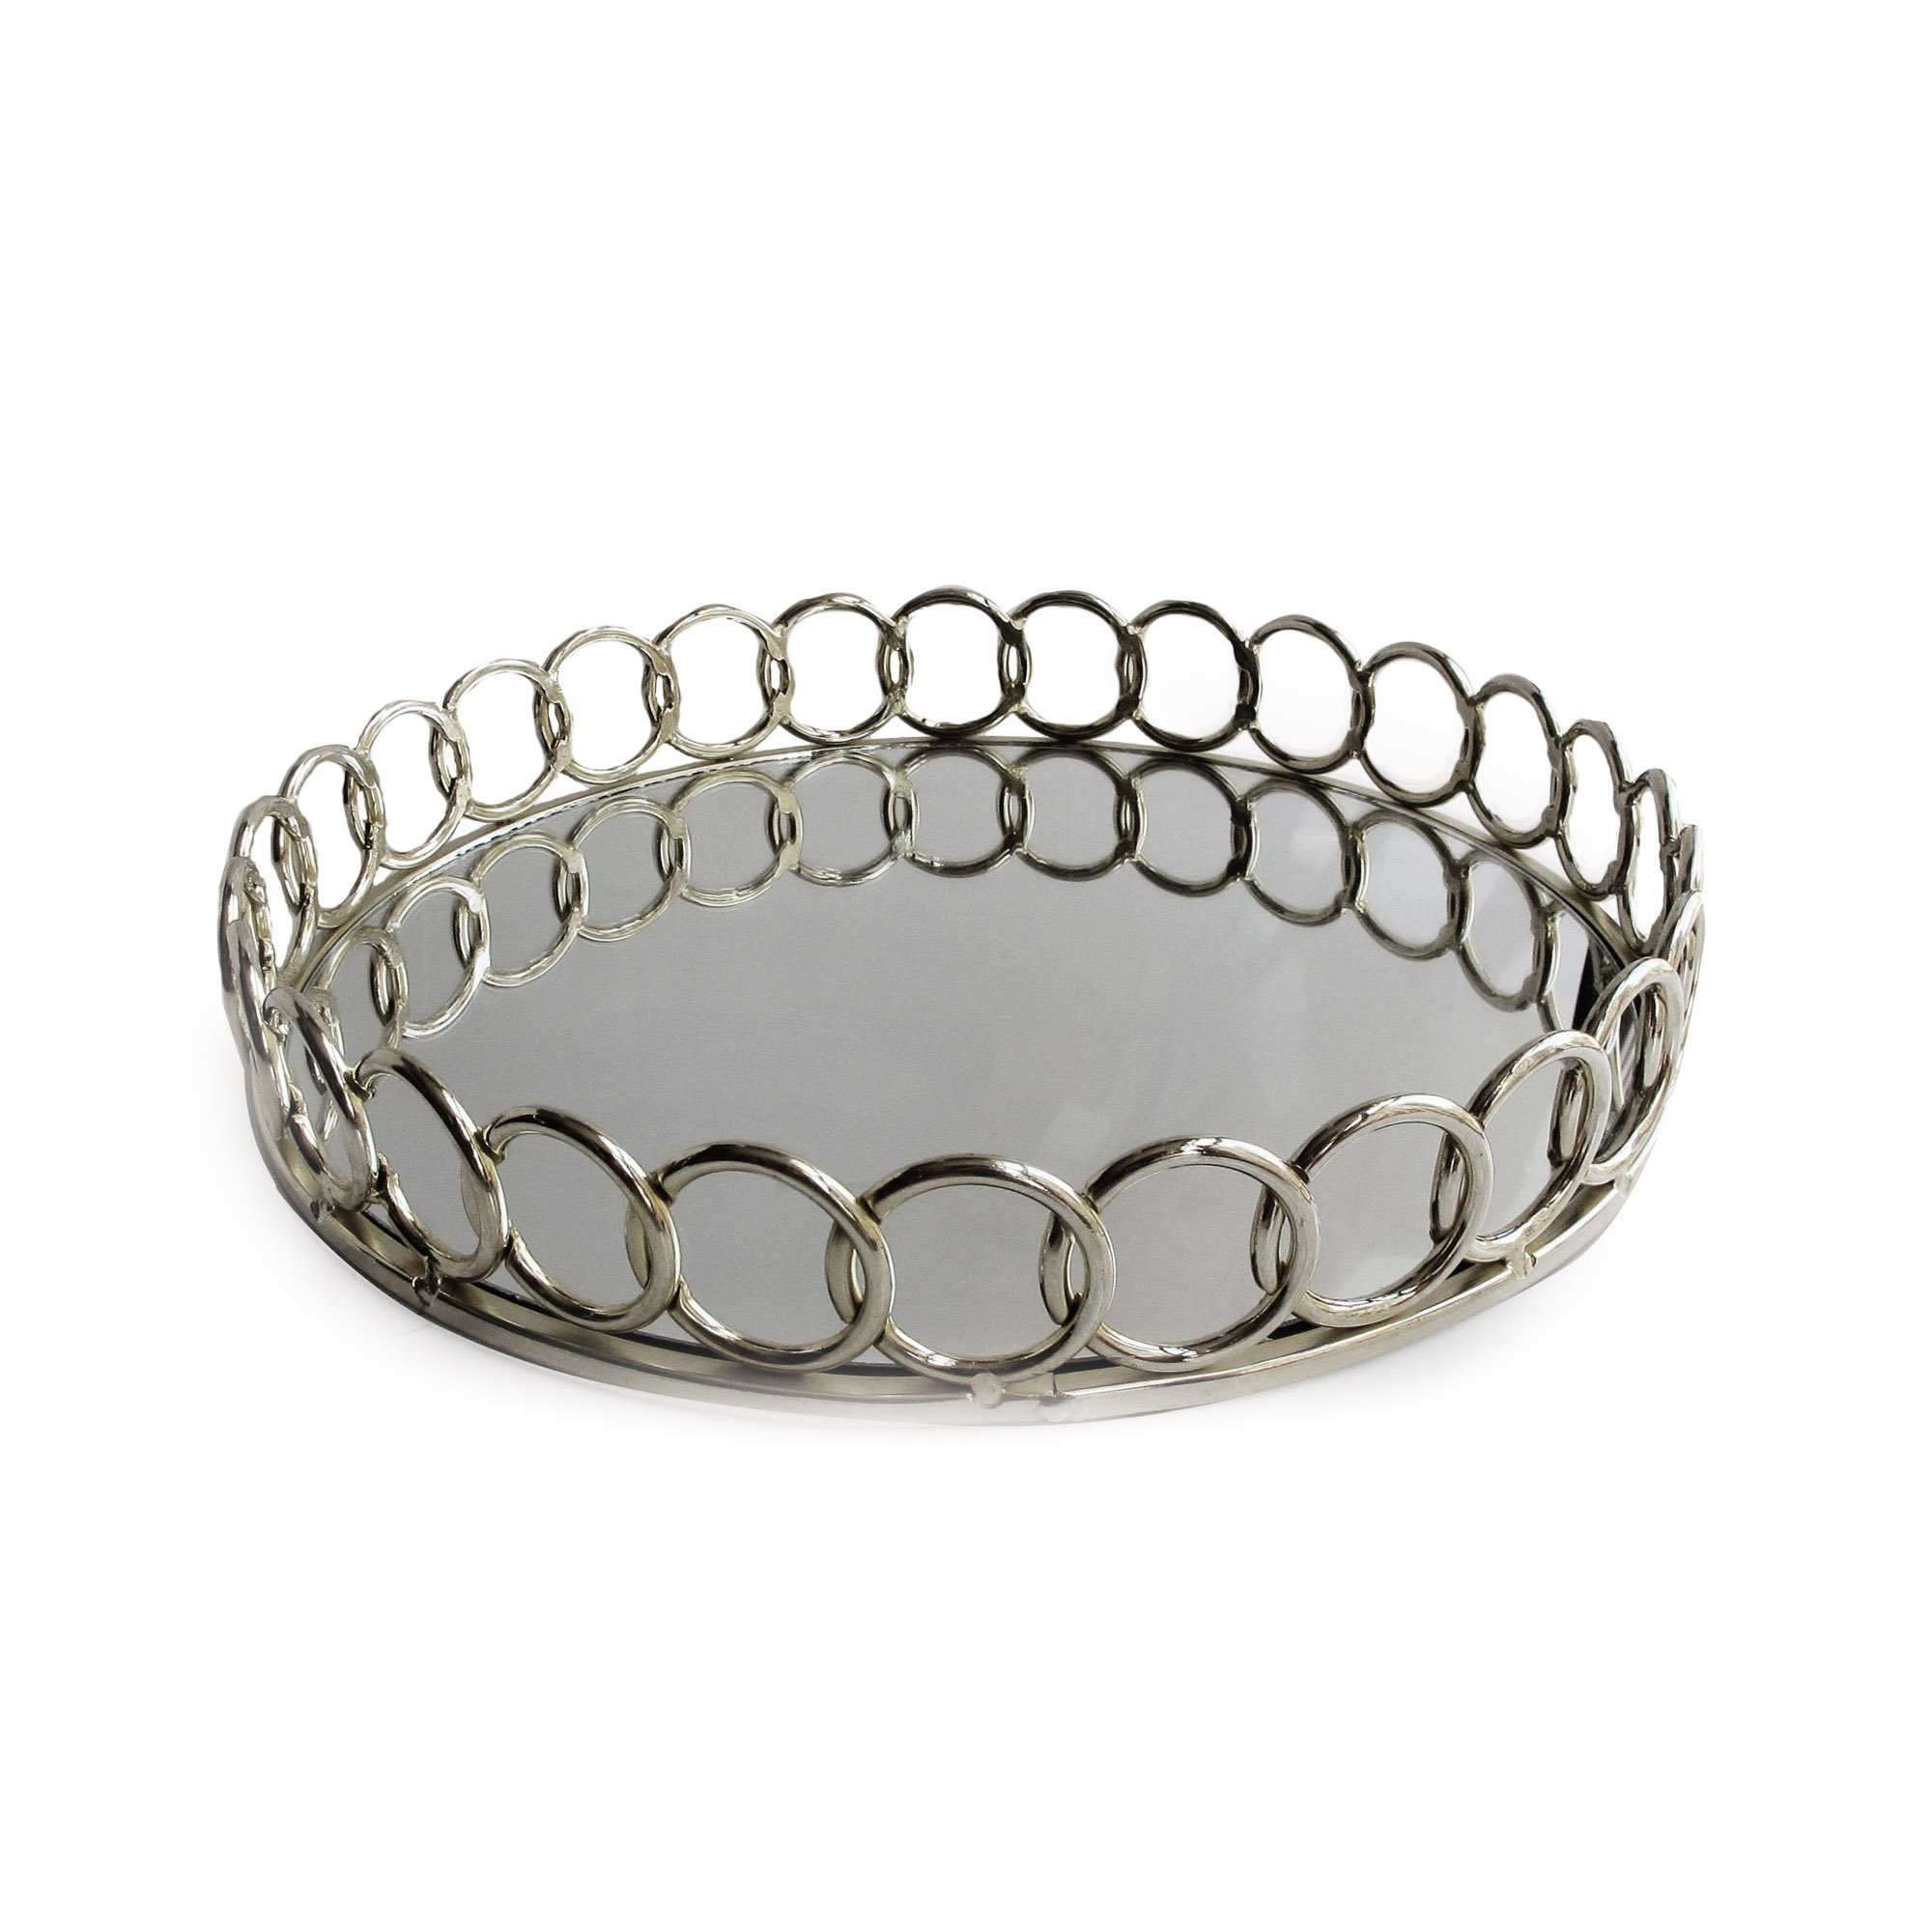 American Atelier 1332747 Looped Round Mirror Tray, Silver by American Atelier